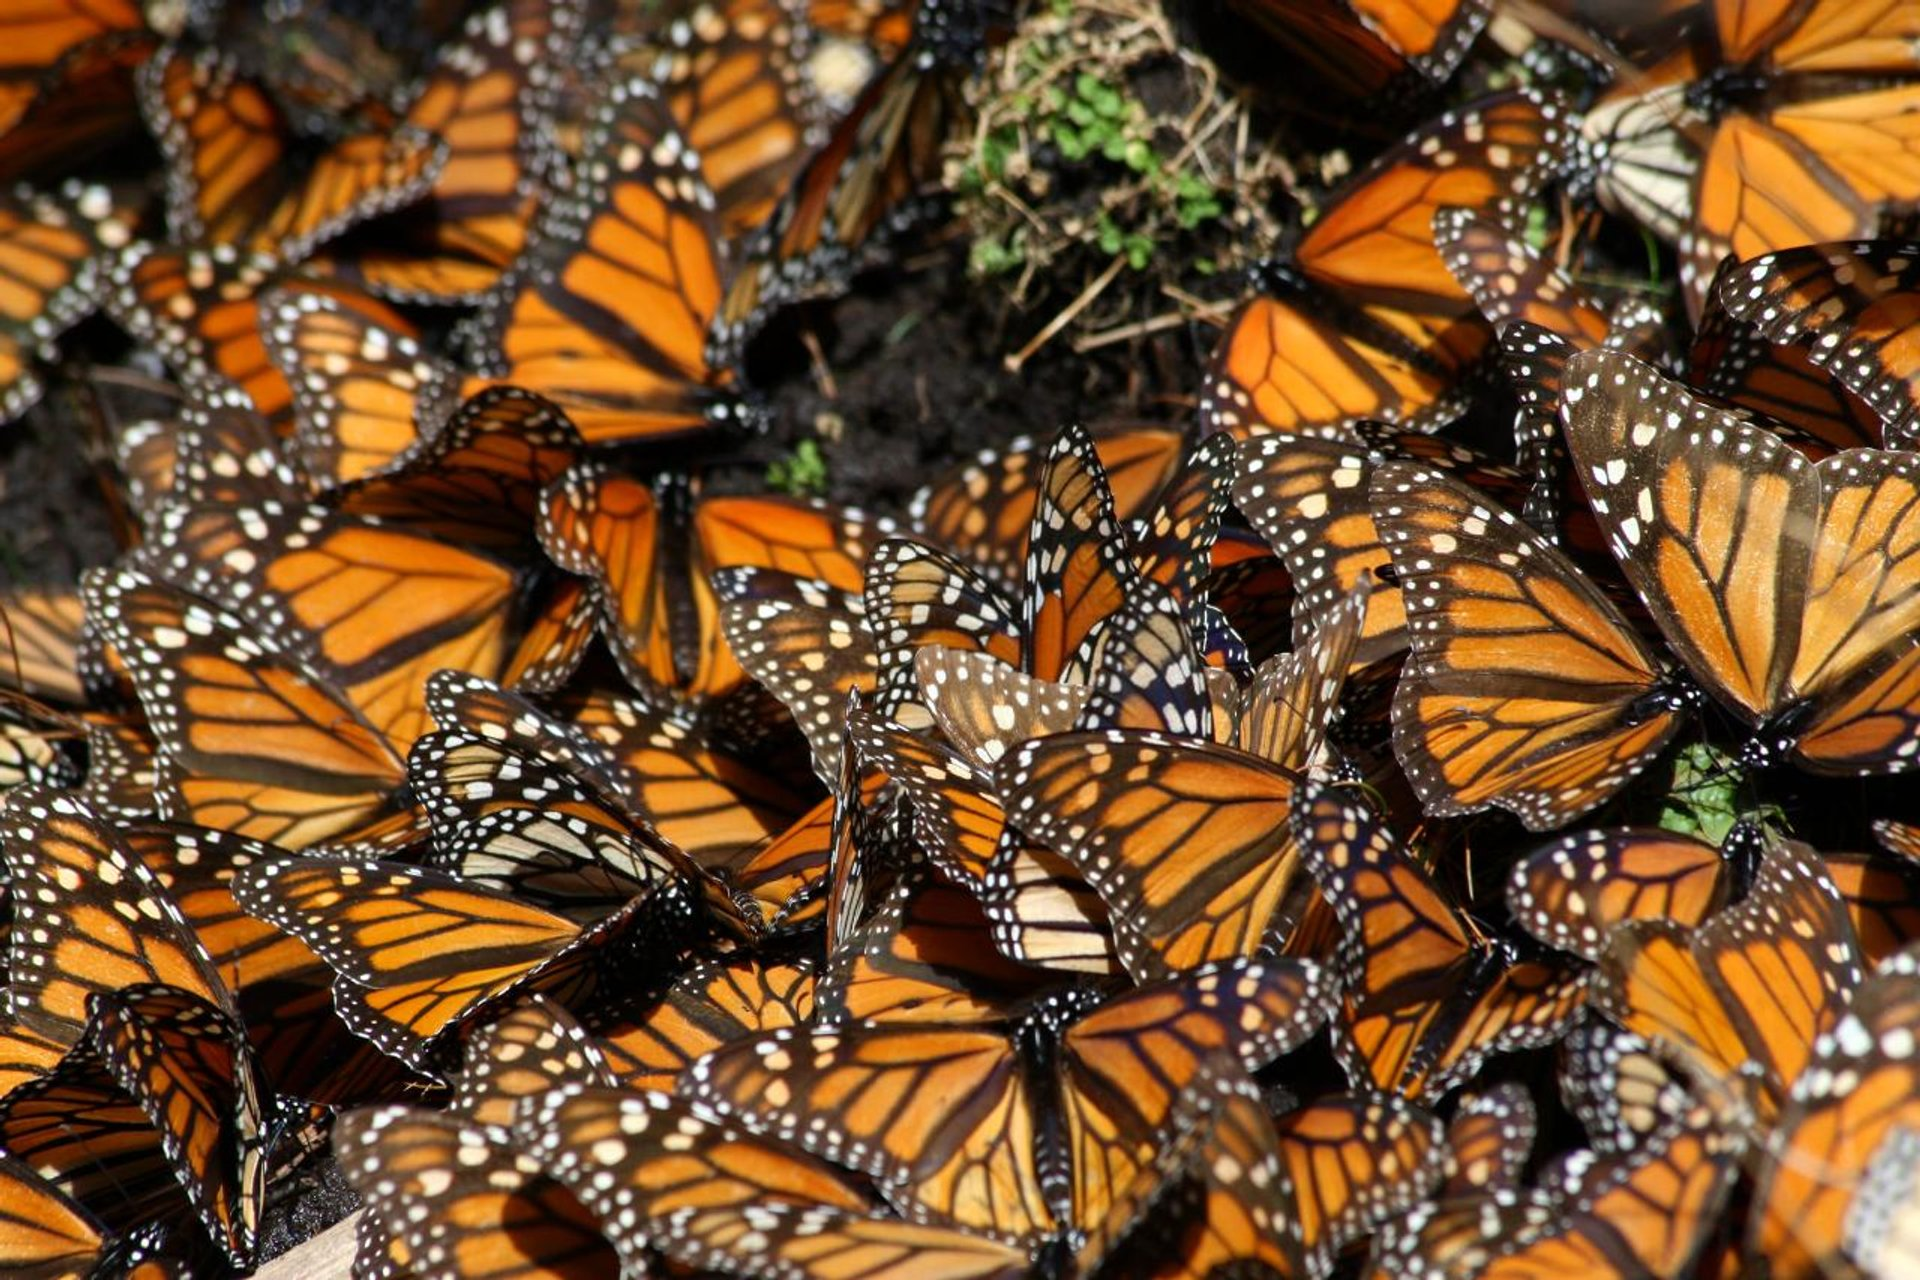 Monarch Butterfly Migration in Mexico - Best Time